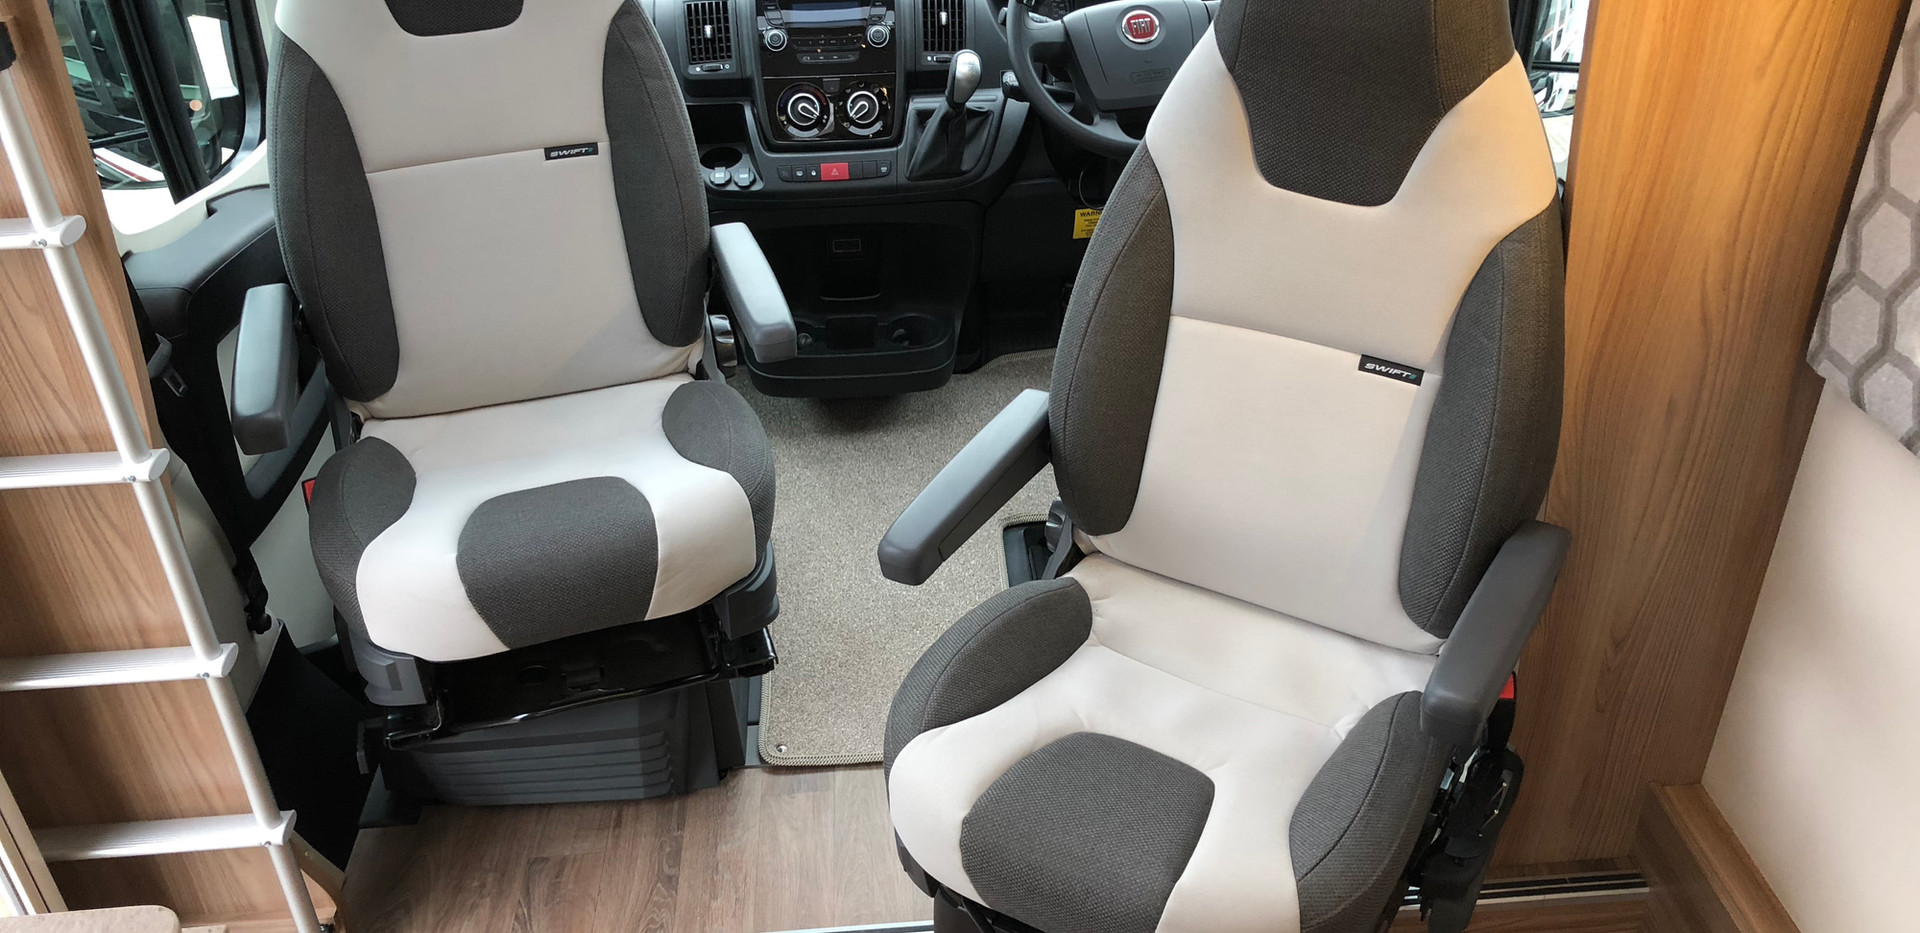 Coachbuilt Accessible Hire, Wheelchair Accessible Motorhome Hire, Wheechair Accessible Mothorhome Rental, Accessible Camper van Hire, Accessible Camper Van Rental, Wheelchair Accessible Motorhomes, Wheelchair Accessible Holidays, United Kingdom